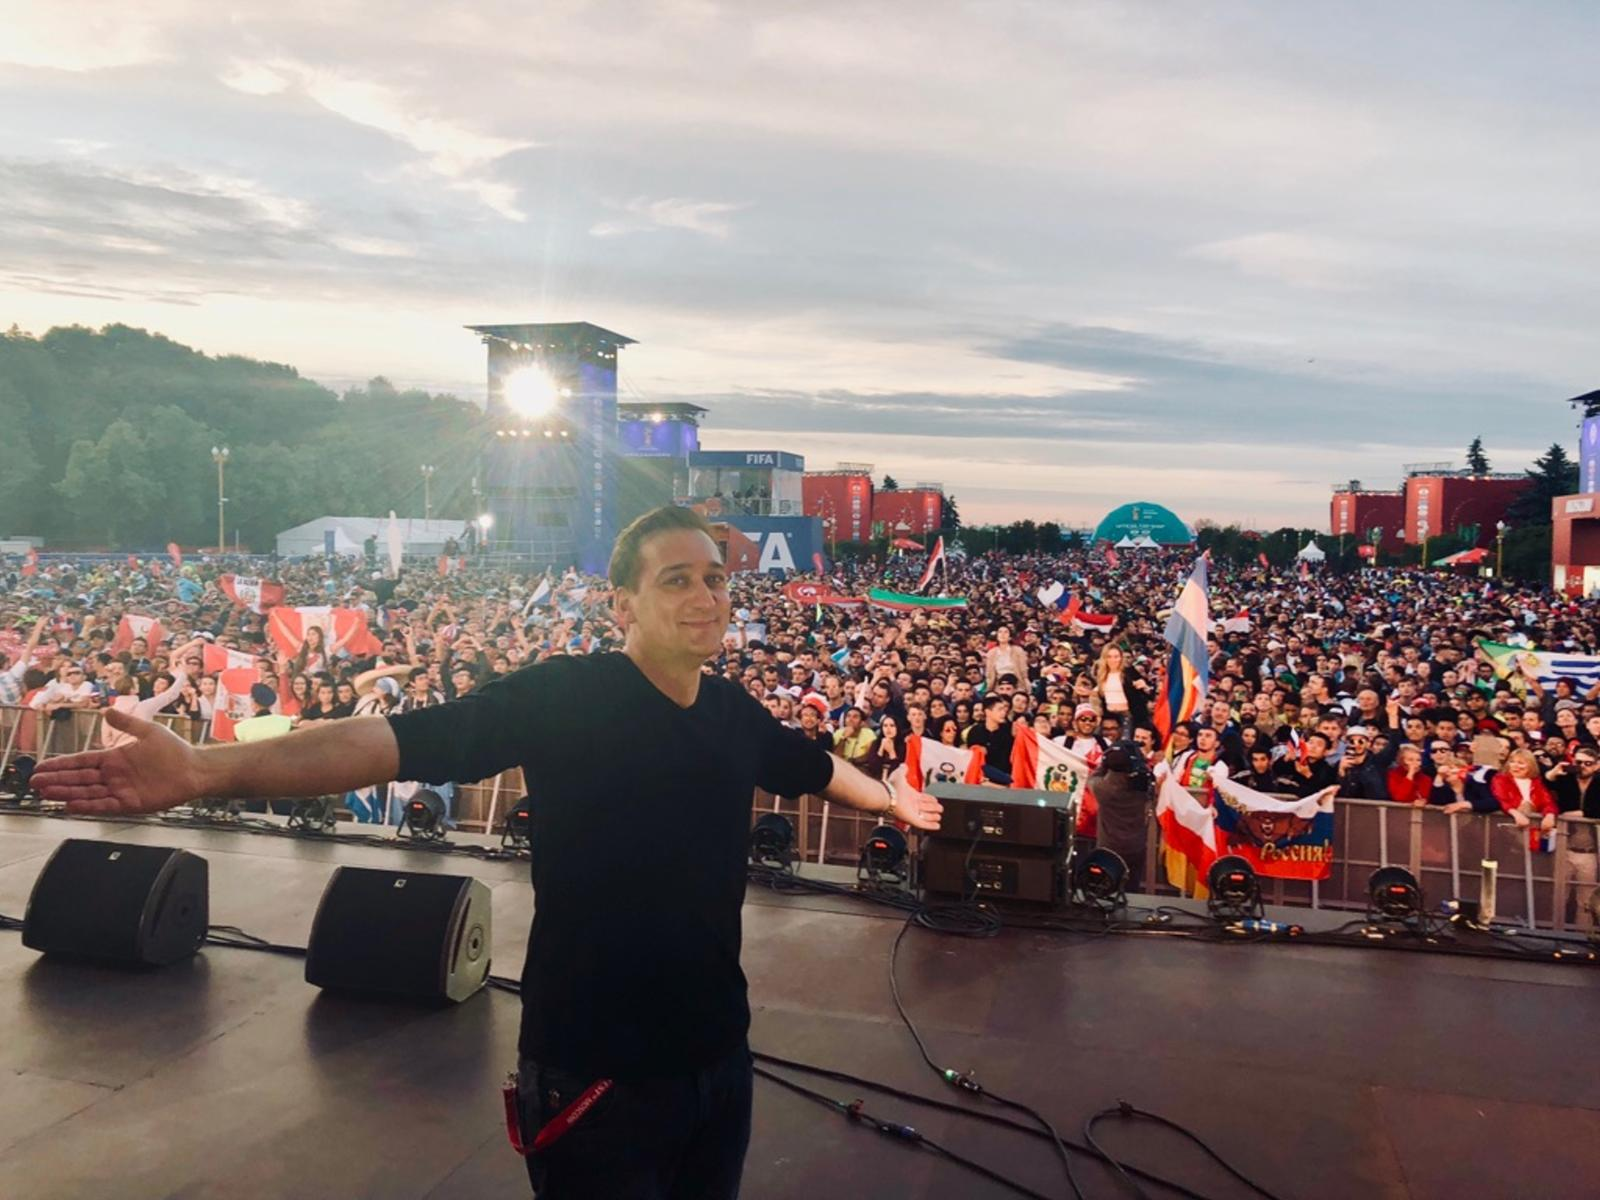 Incredible energy at the FIFA Fan Fest in Moscow ⚽️ #WorldCup2018 https://t.co/Wg9yFdJ3mi